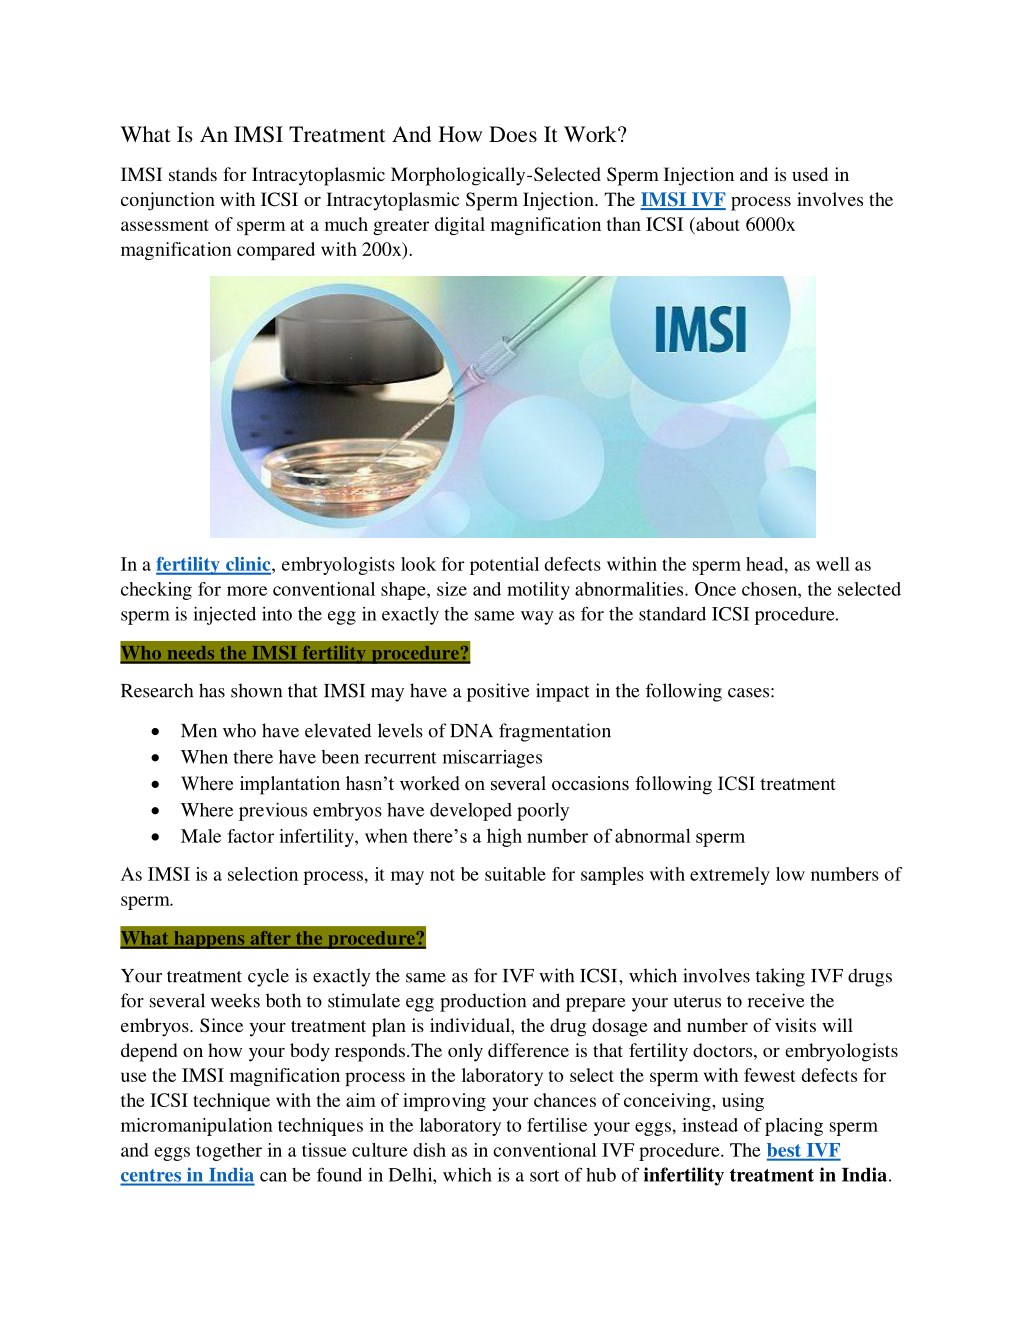 PPT - What Is An IMSI Treatment And How Does It Work